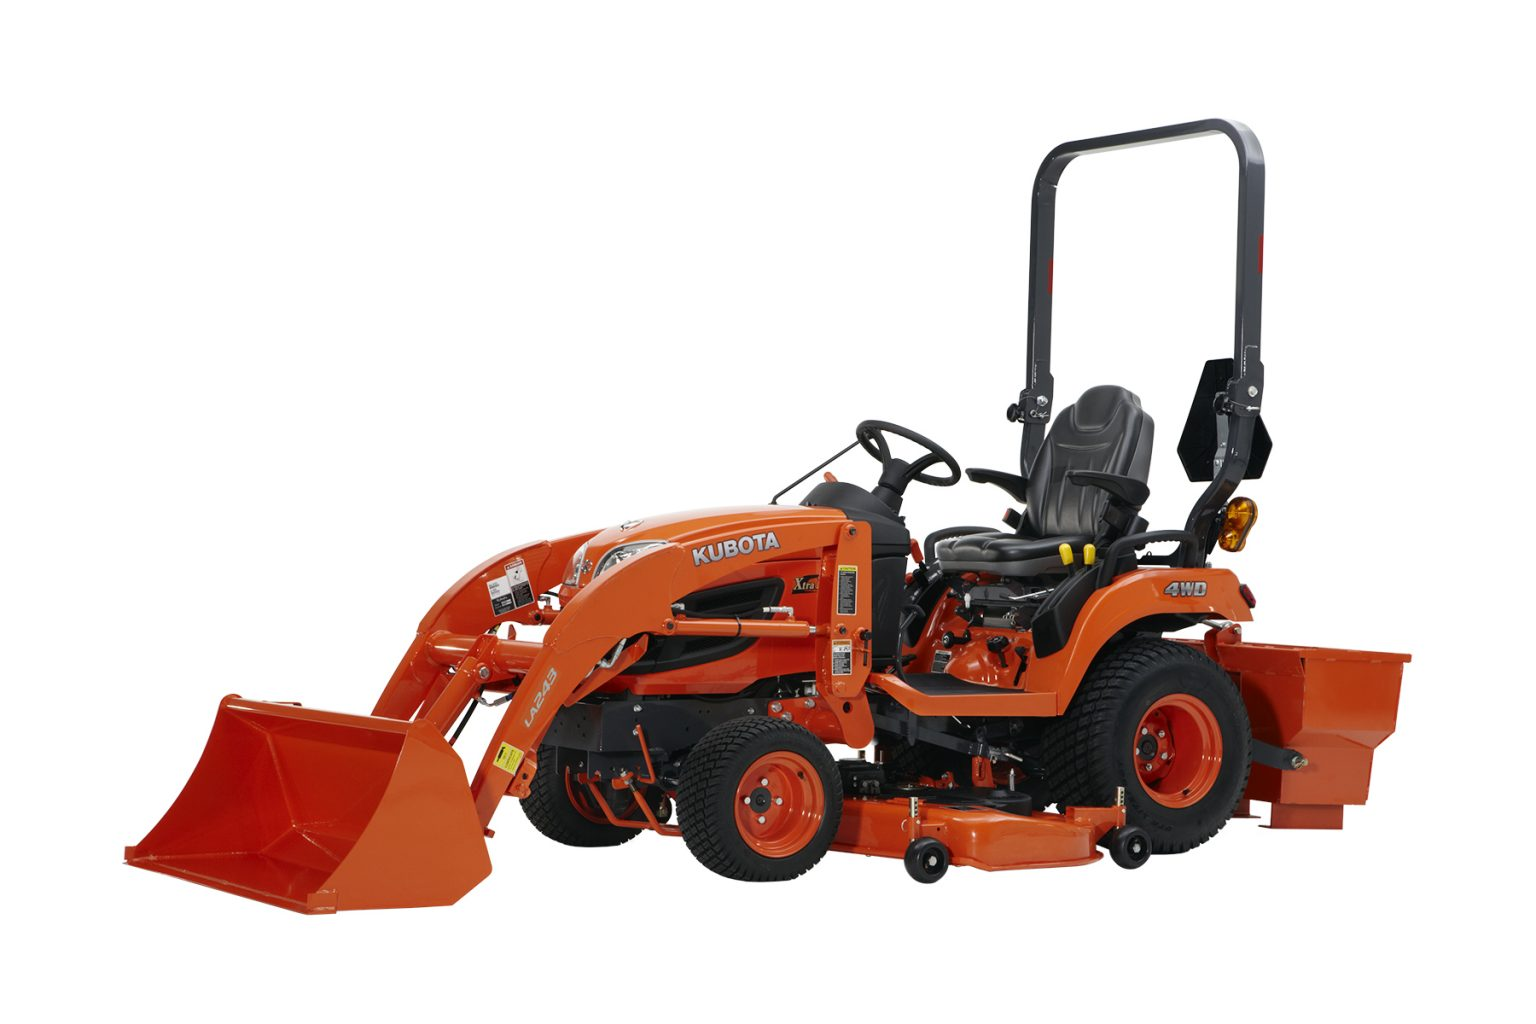 wet bar pump with Kubota Bx2670  Pact Tractor Price Attachments Specs Review on The Craftsman Cordless Inflator additionally Sea Ray 290 Sundeck 89054 additionally Photo gallery also Pneumatic Jack Hammer Breaker  Tenaga Angin as well Foton 5500 Series.